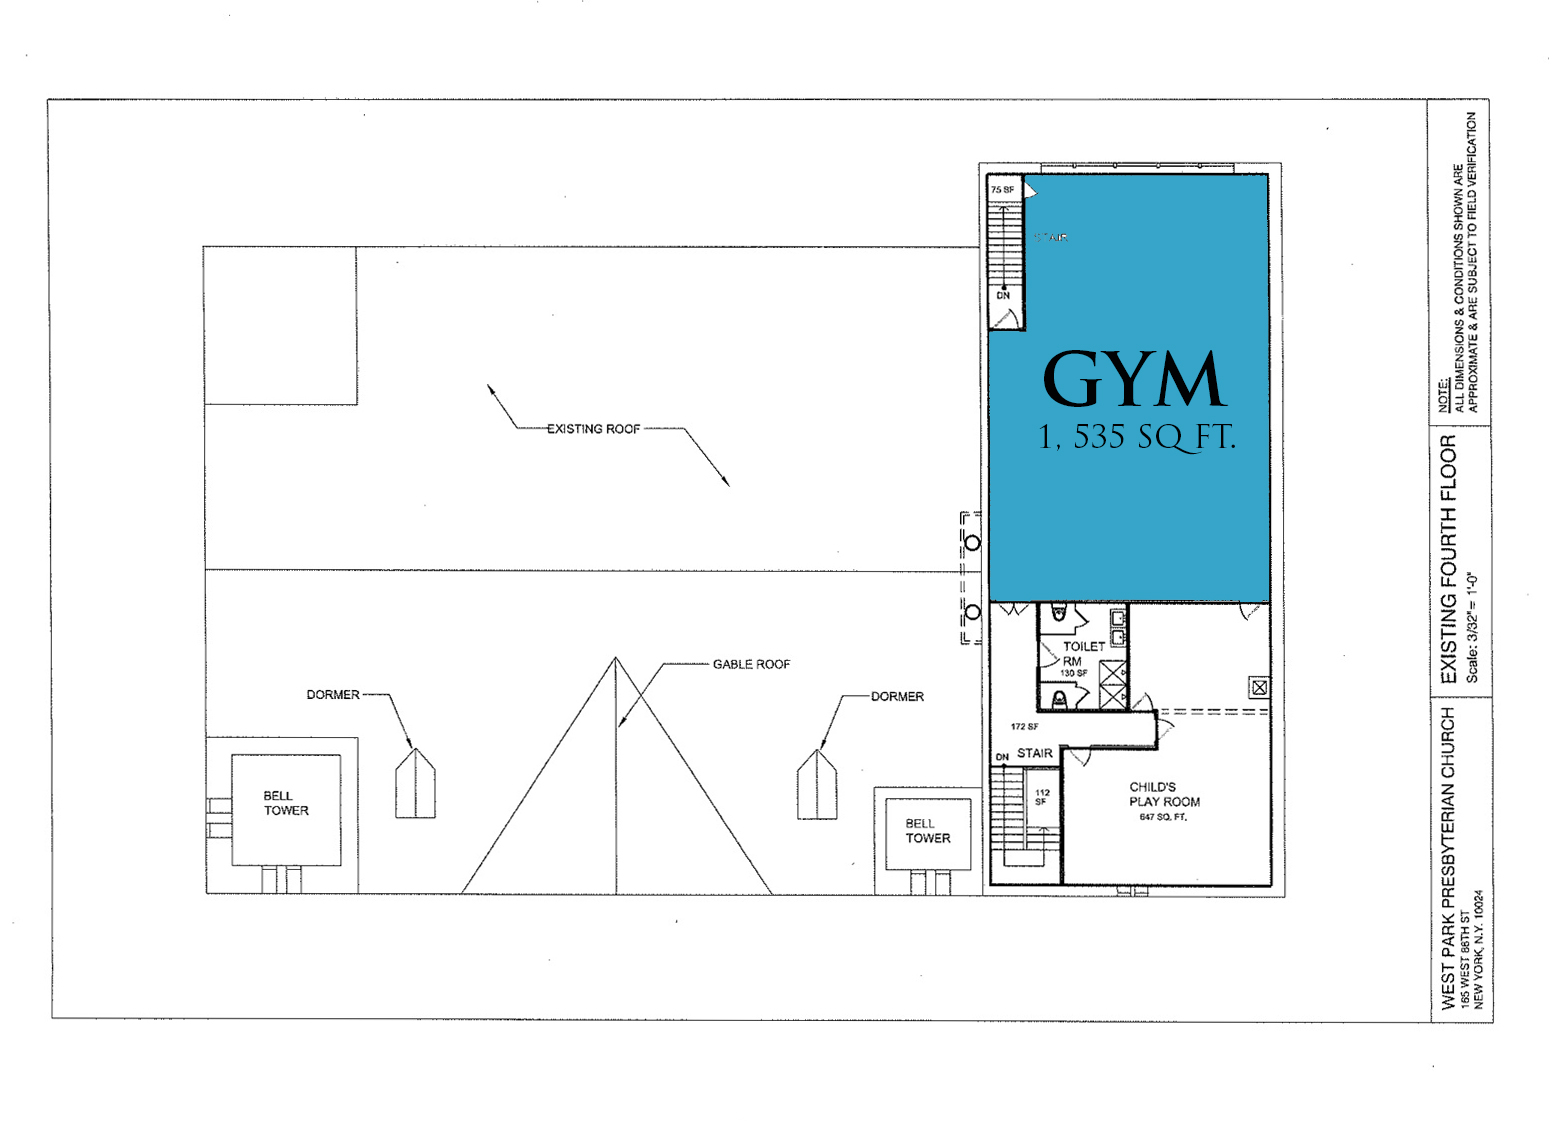 West-park-gym-floorplans2